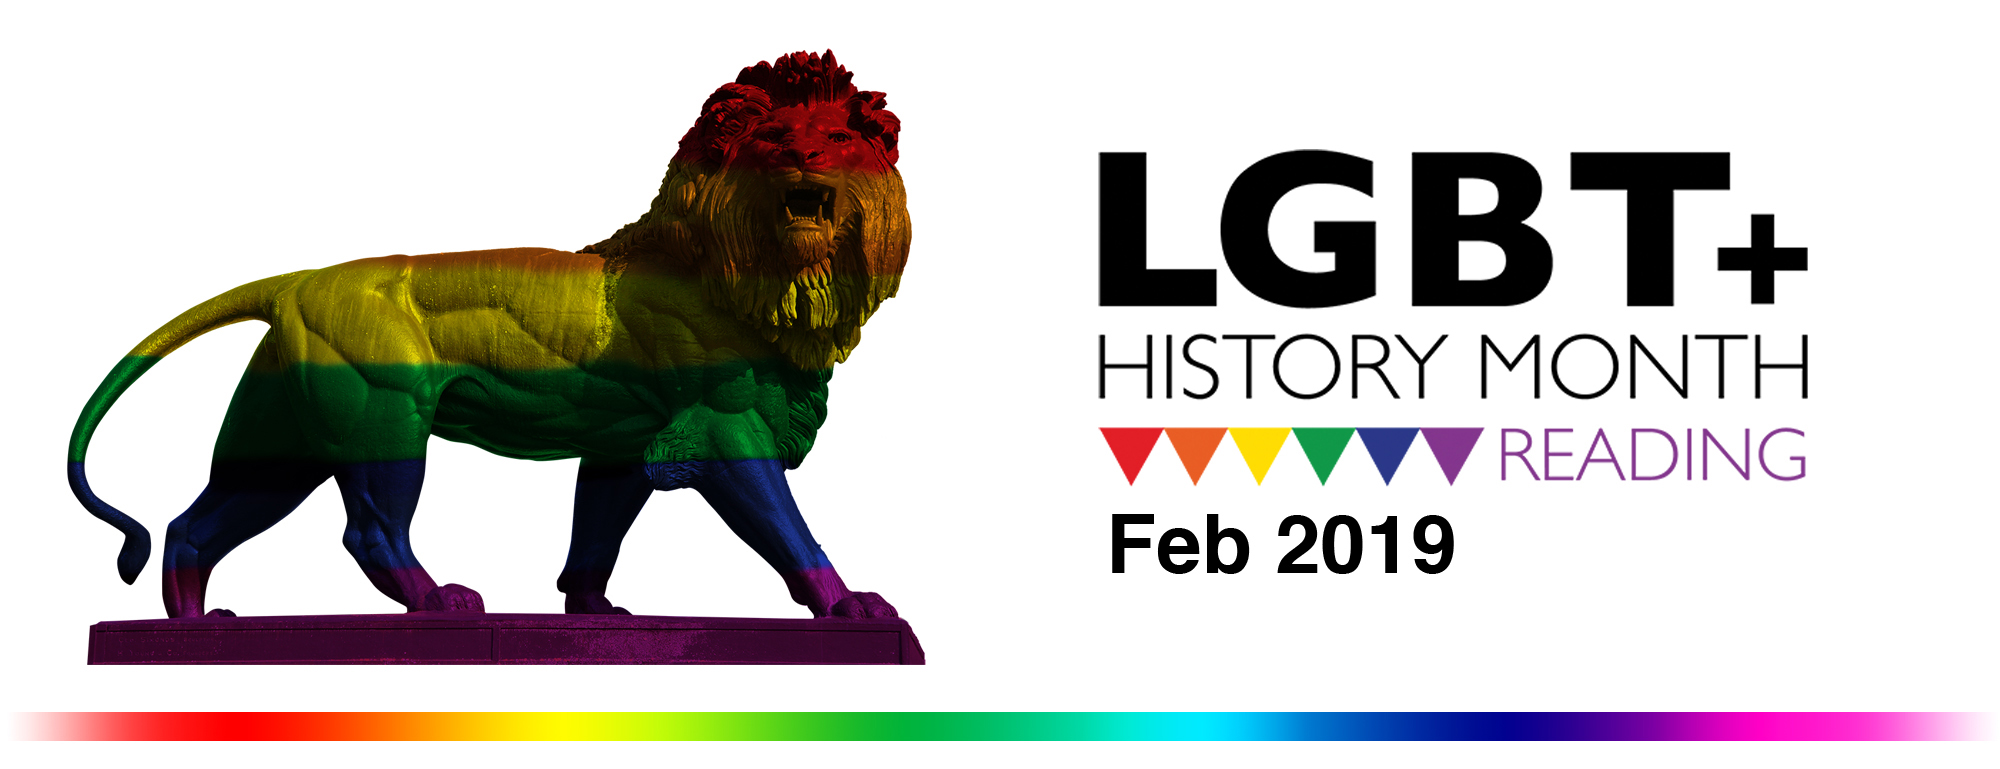 Reading LGBT+ History Month